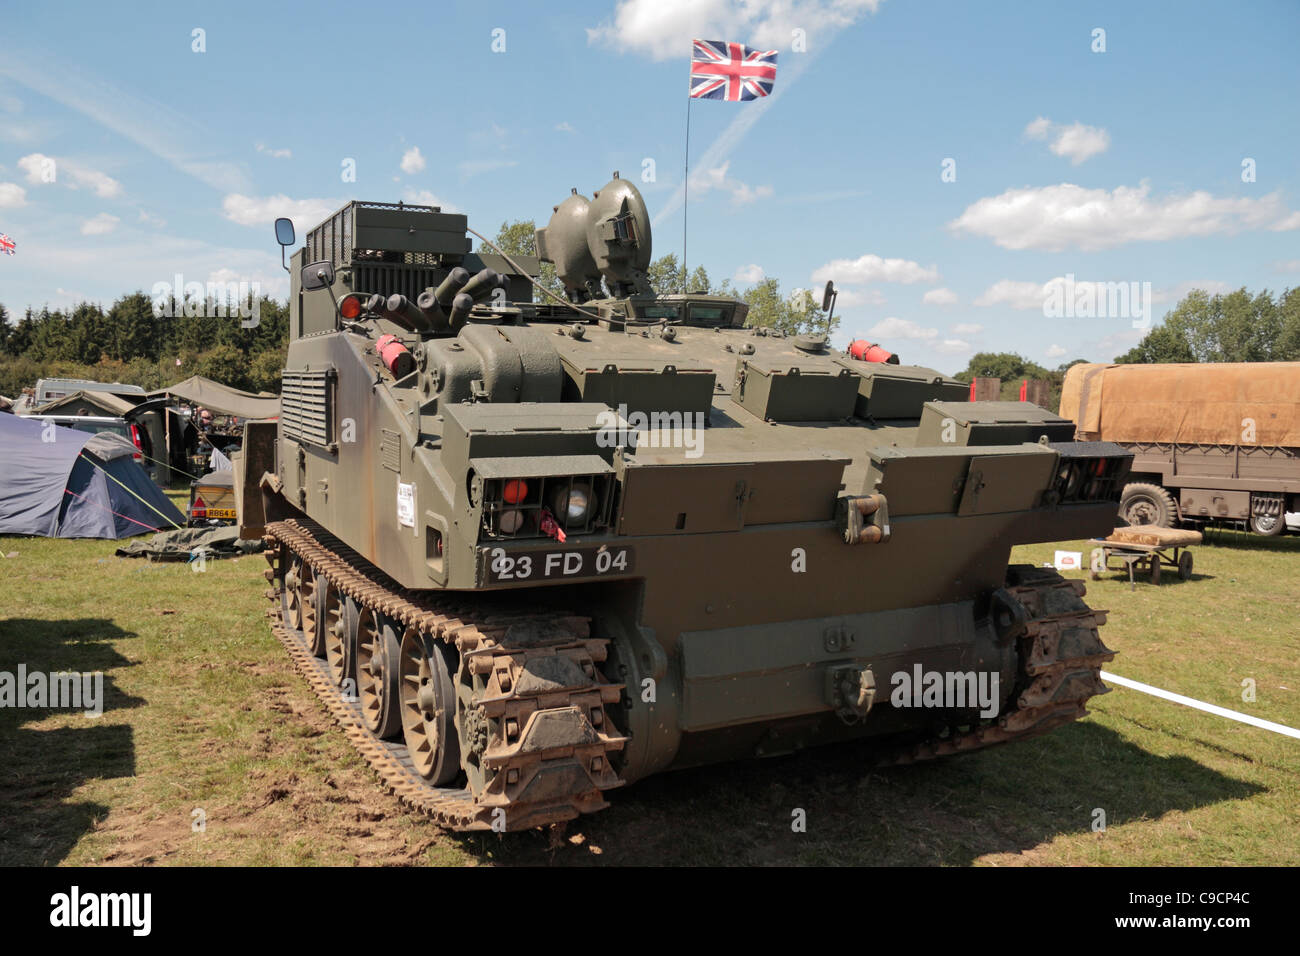 A 1970's British Army Combat Engineer Tractor (CET) on display at the 2011 War & Peace Show at Hop Farm, - Stock Image